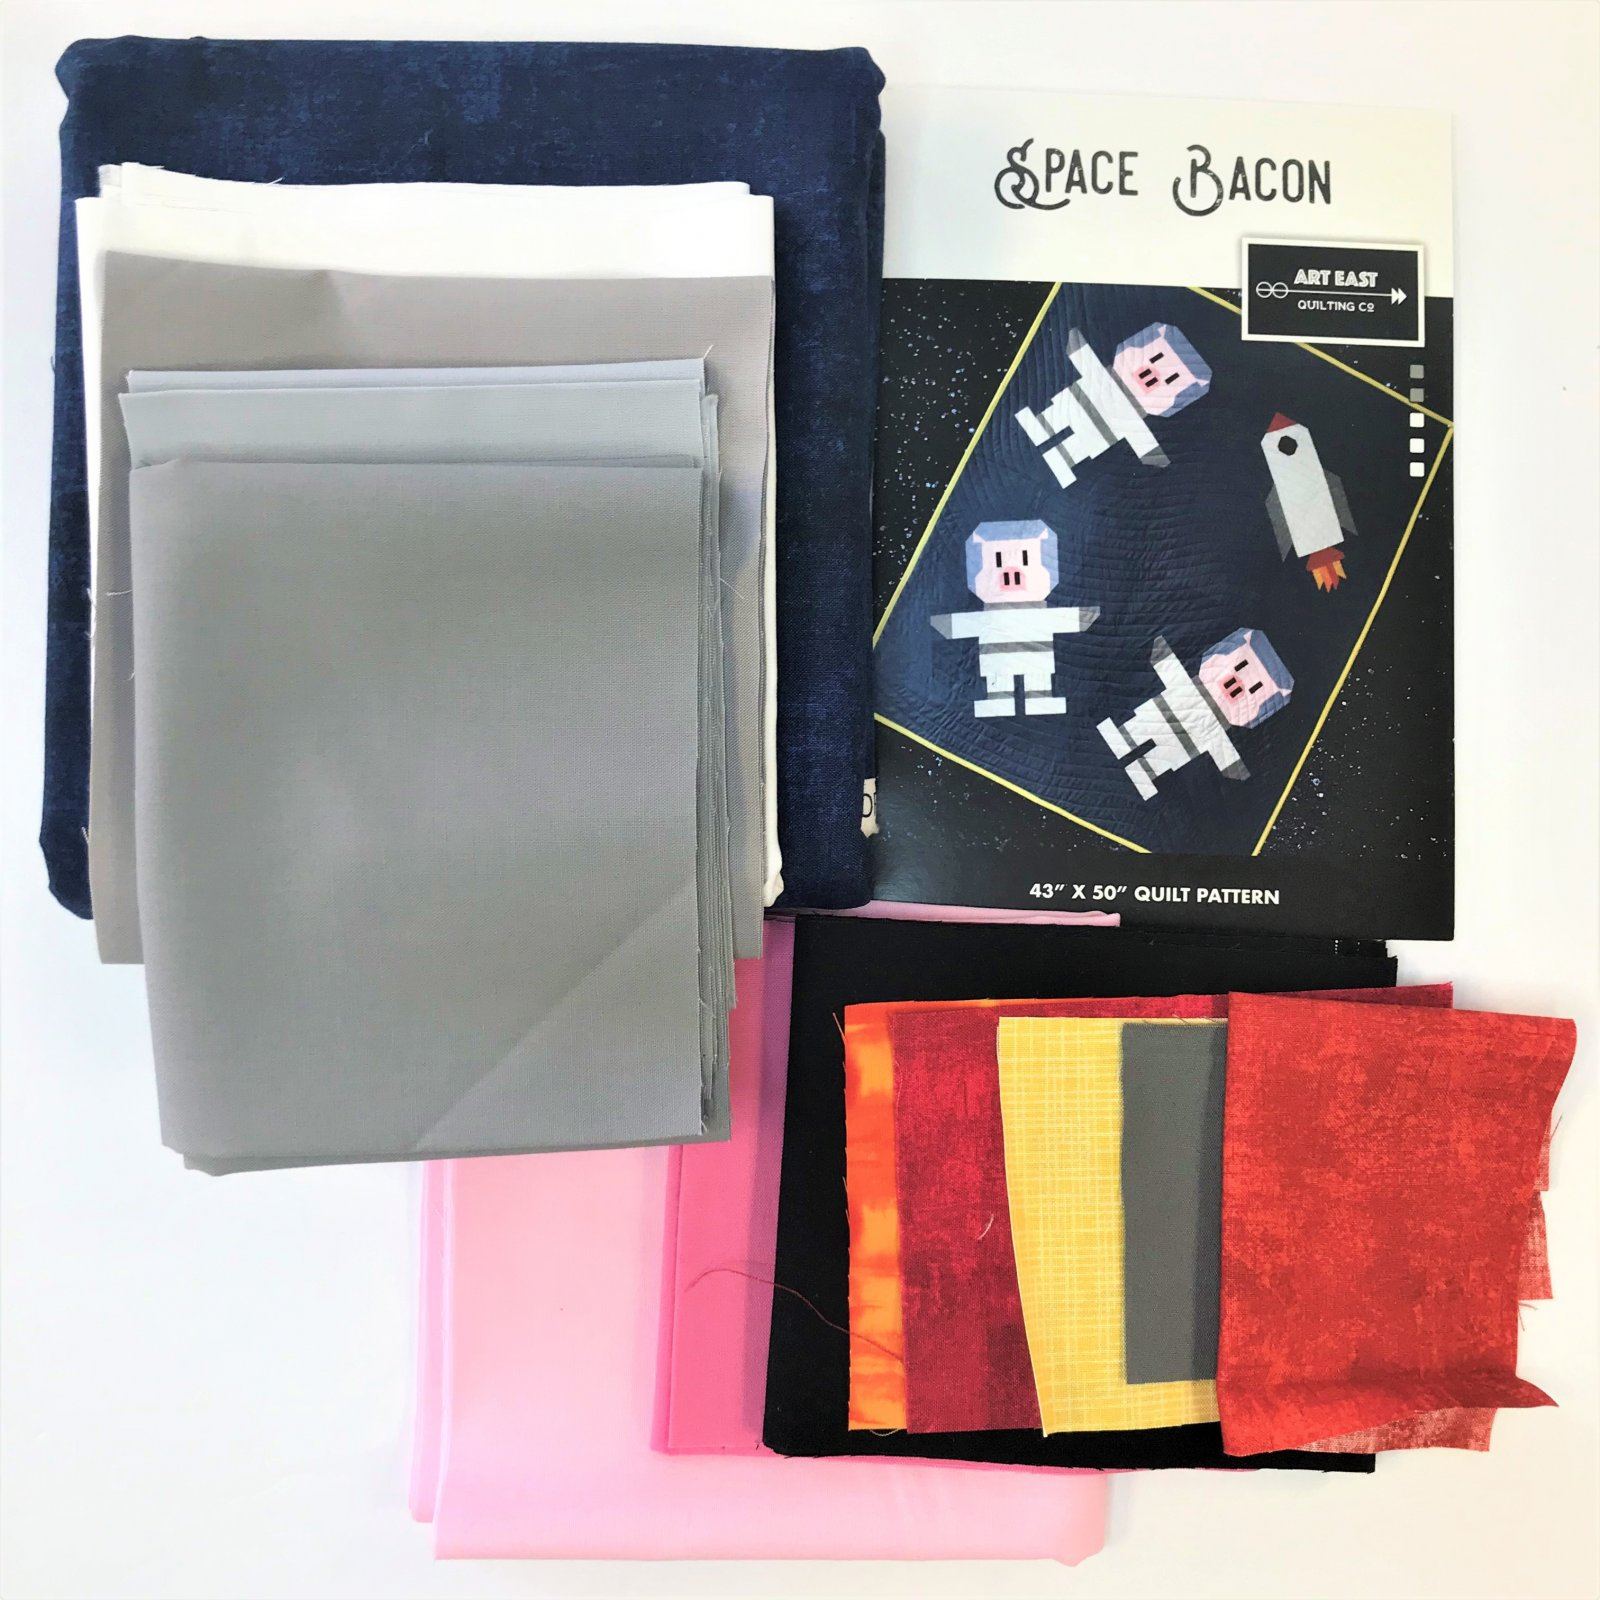 Space Bacon Pattern and Quilt Kit (Art East Quilting Co) - 43 x 50